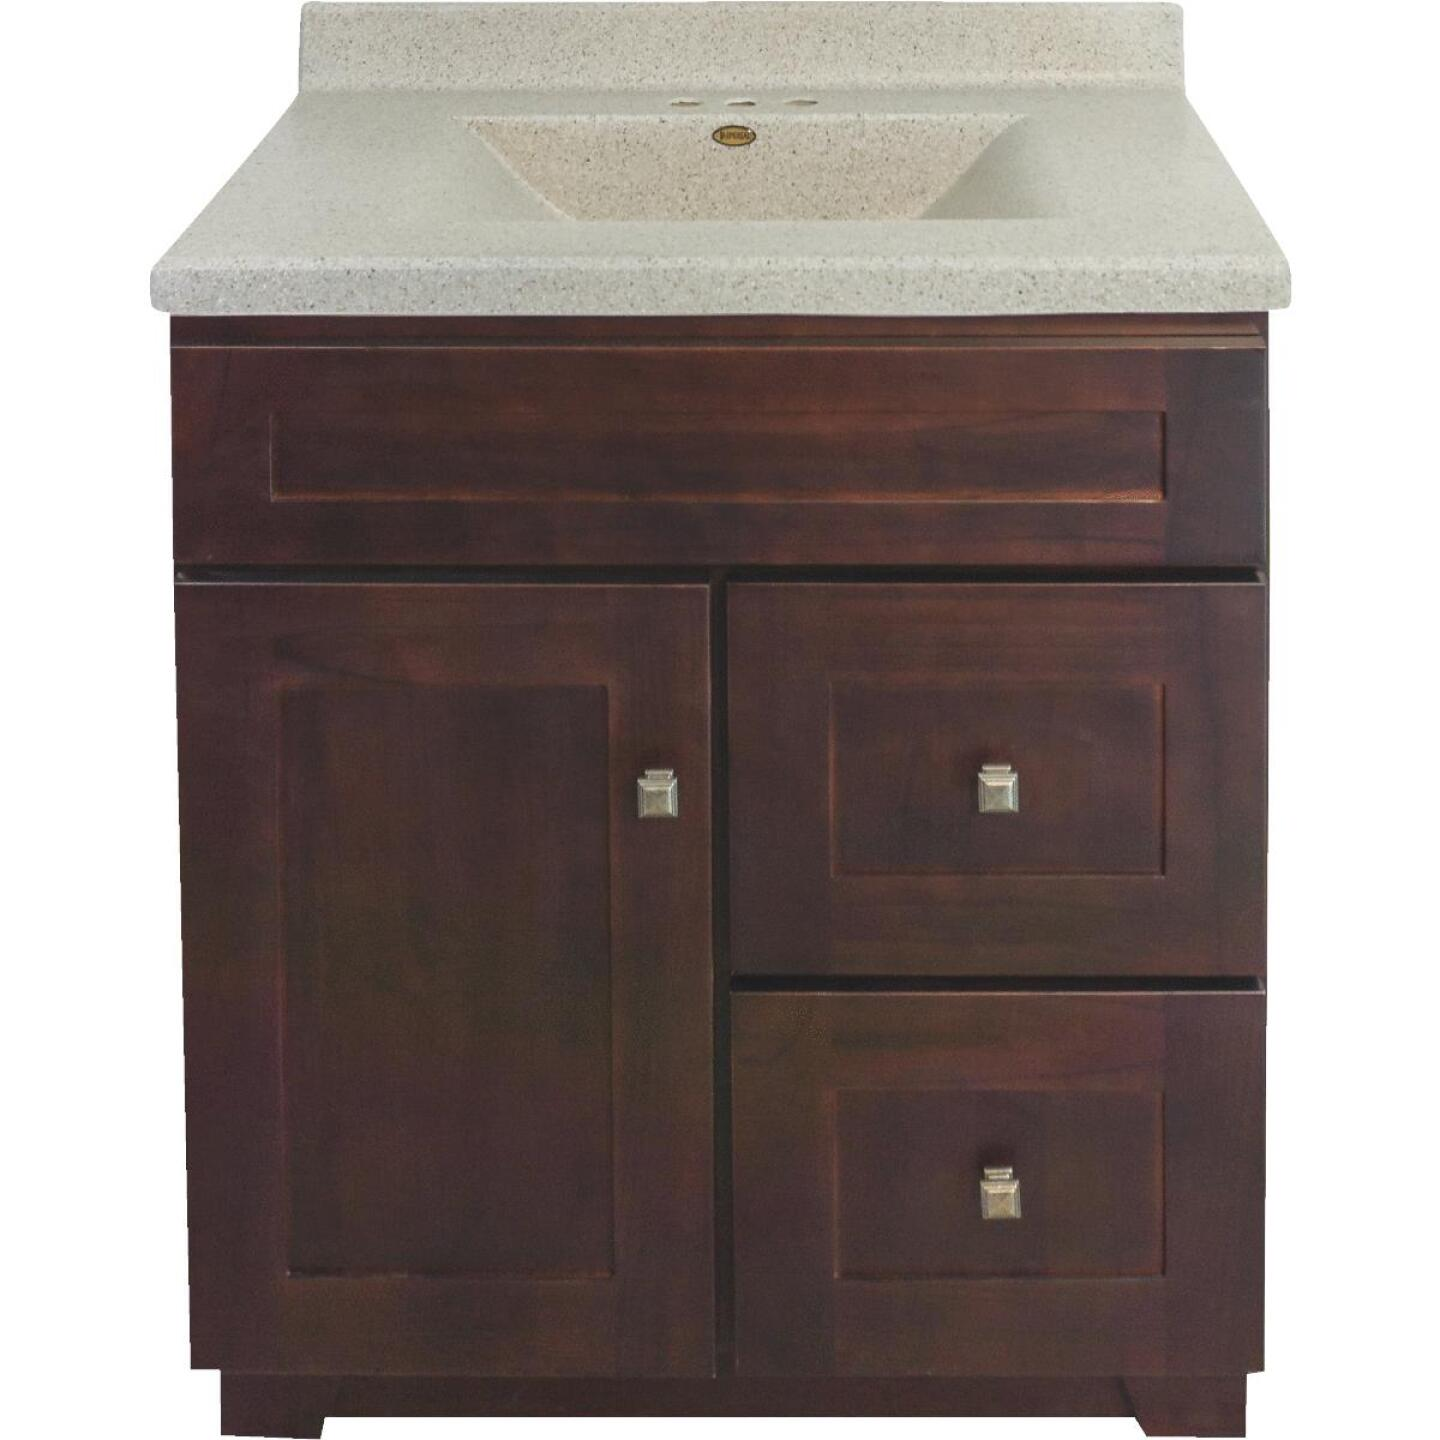 CraftMark CherryVale Shaker Cherry 30 In. W x 34 In. H x 21 In. D Vanity Base, 1 Door/2 Drawer Image 1